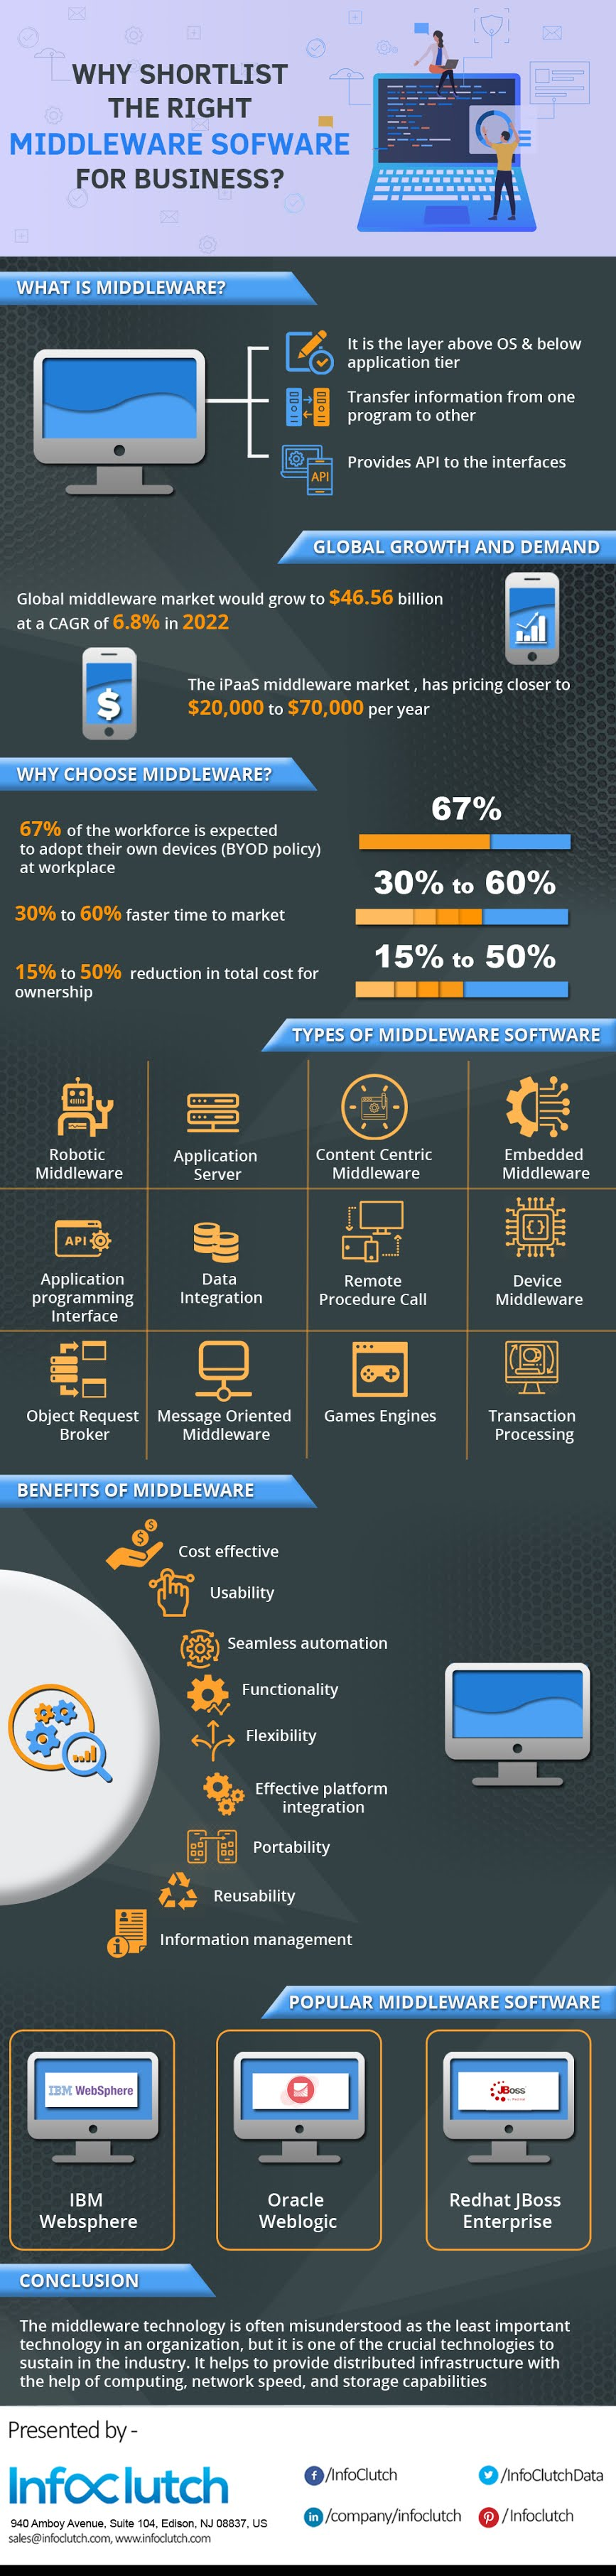 Why Shortlist The Right Middleware Software For Business? #infographic